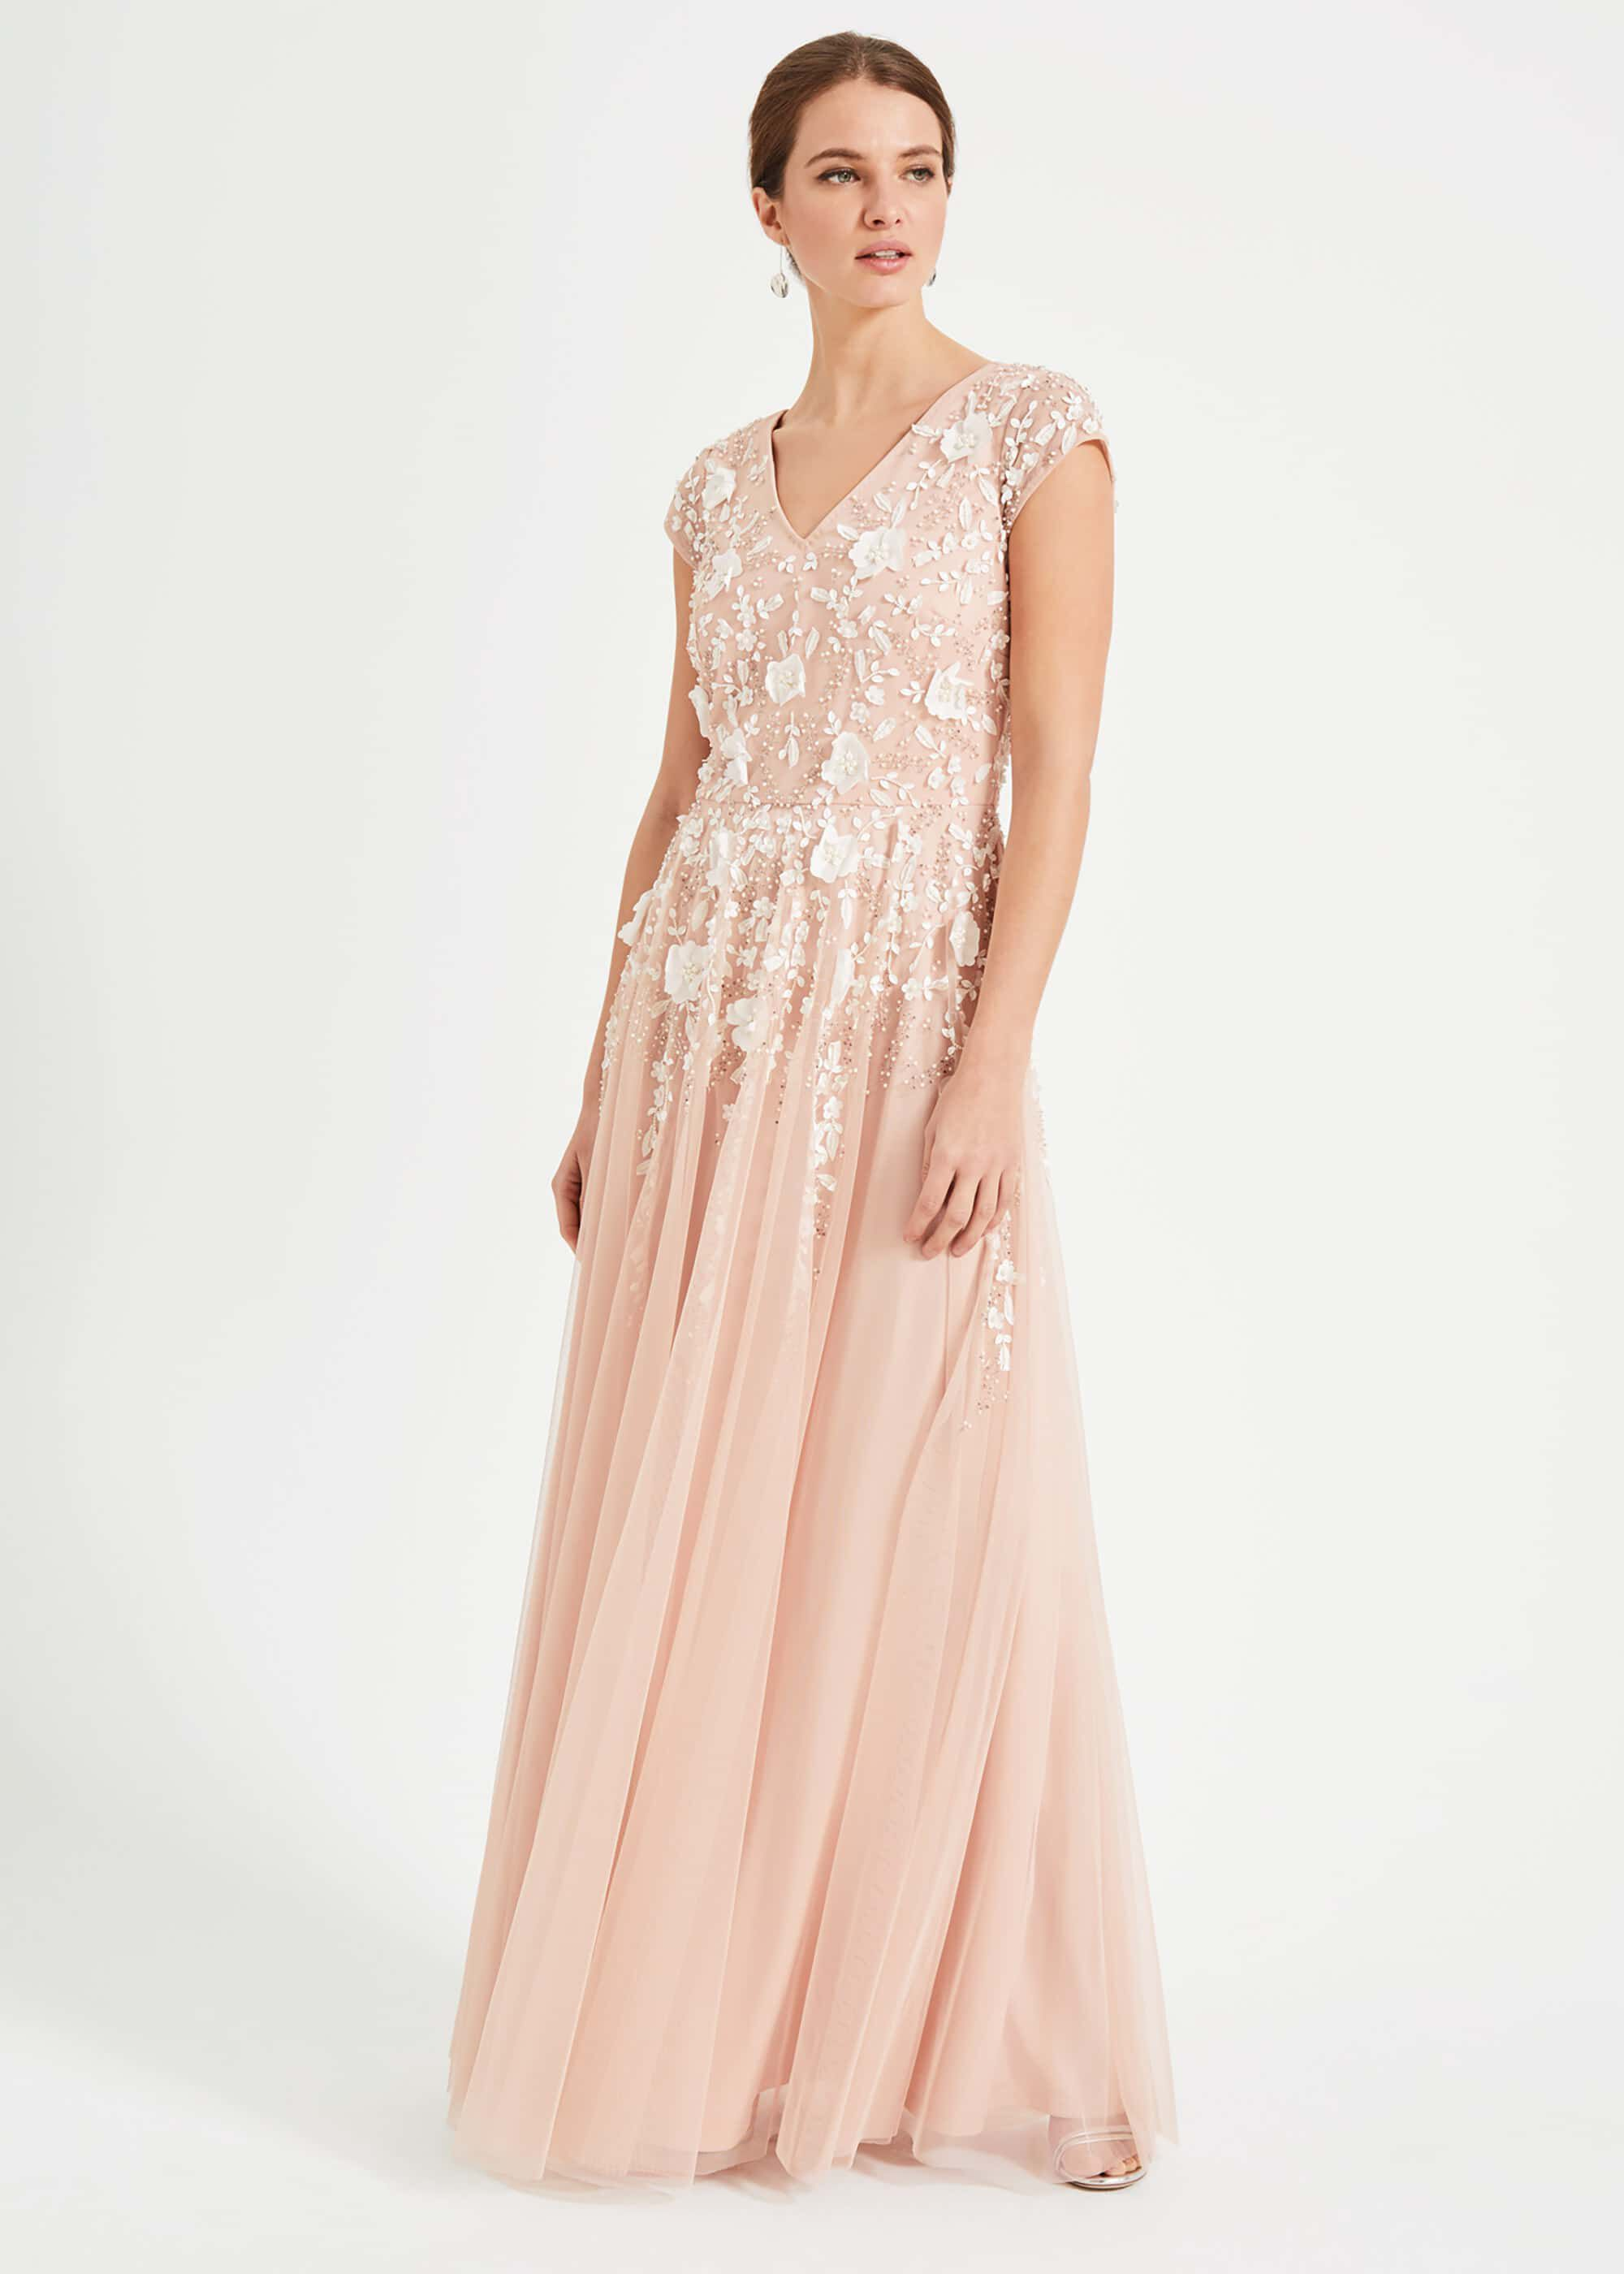 Phase Eight Henriette Flower Maxi Dress, Pink, Maxi